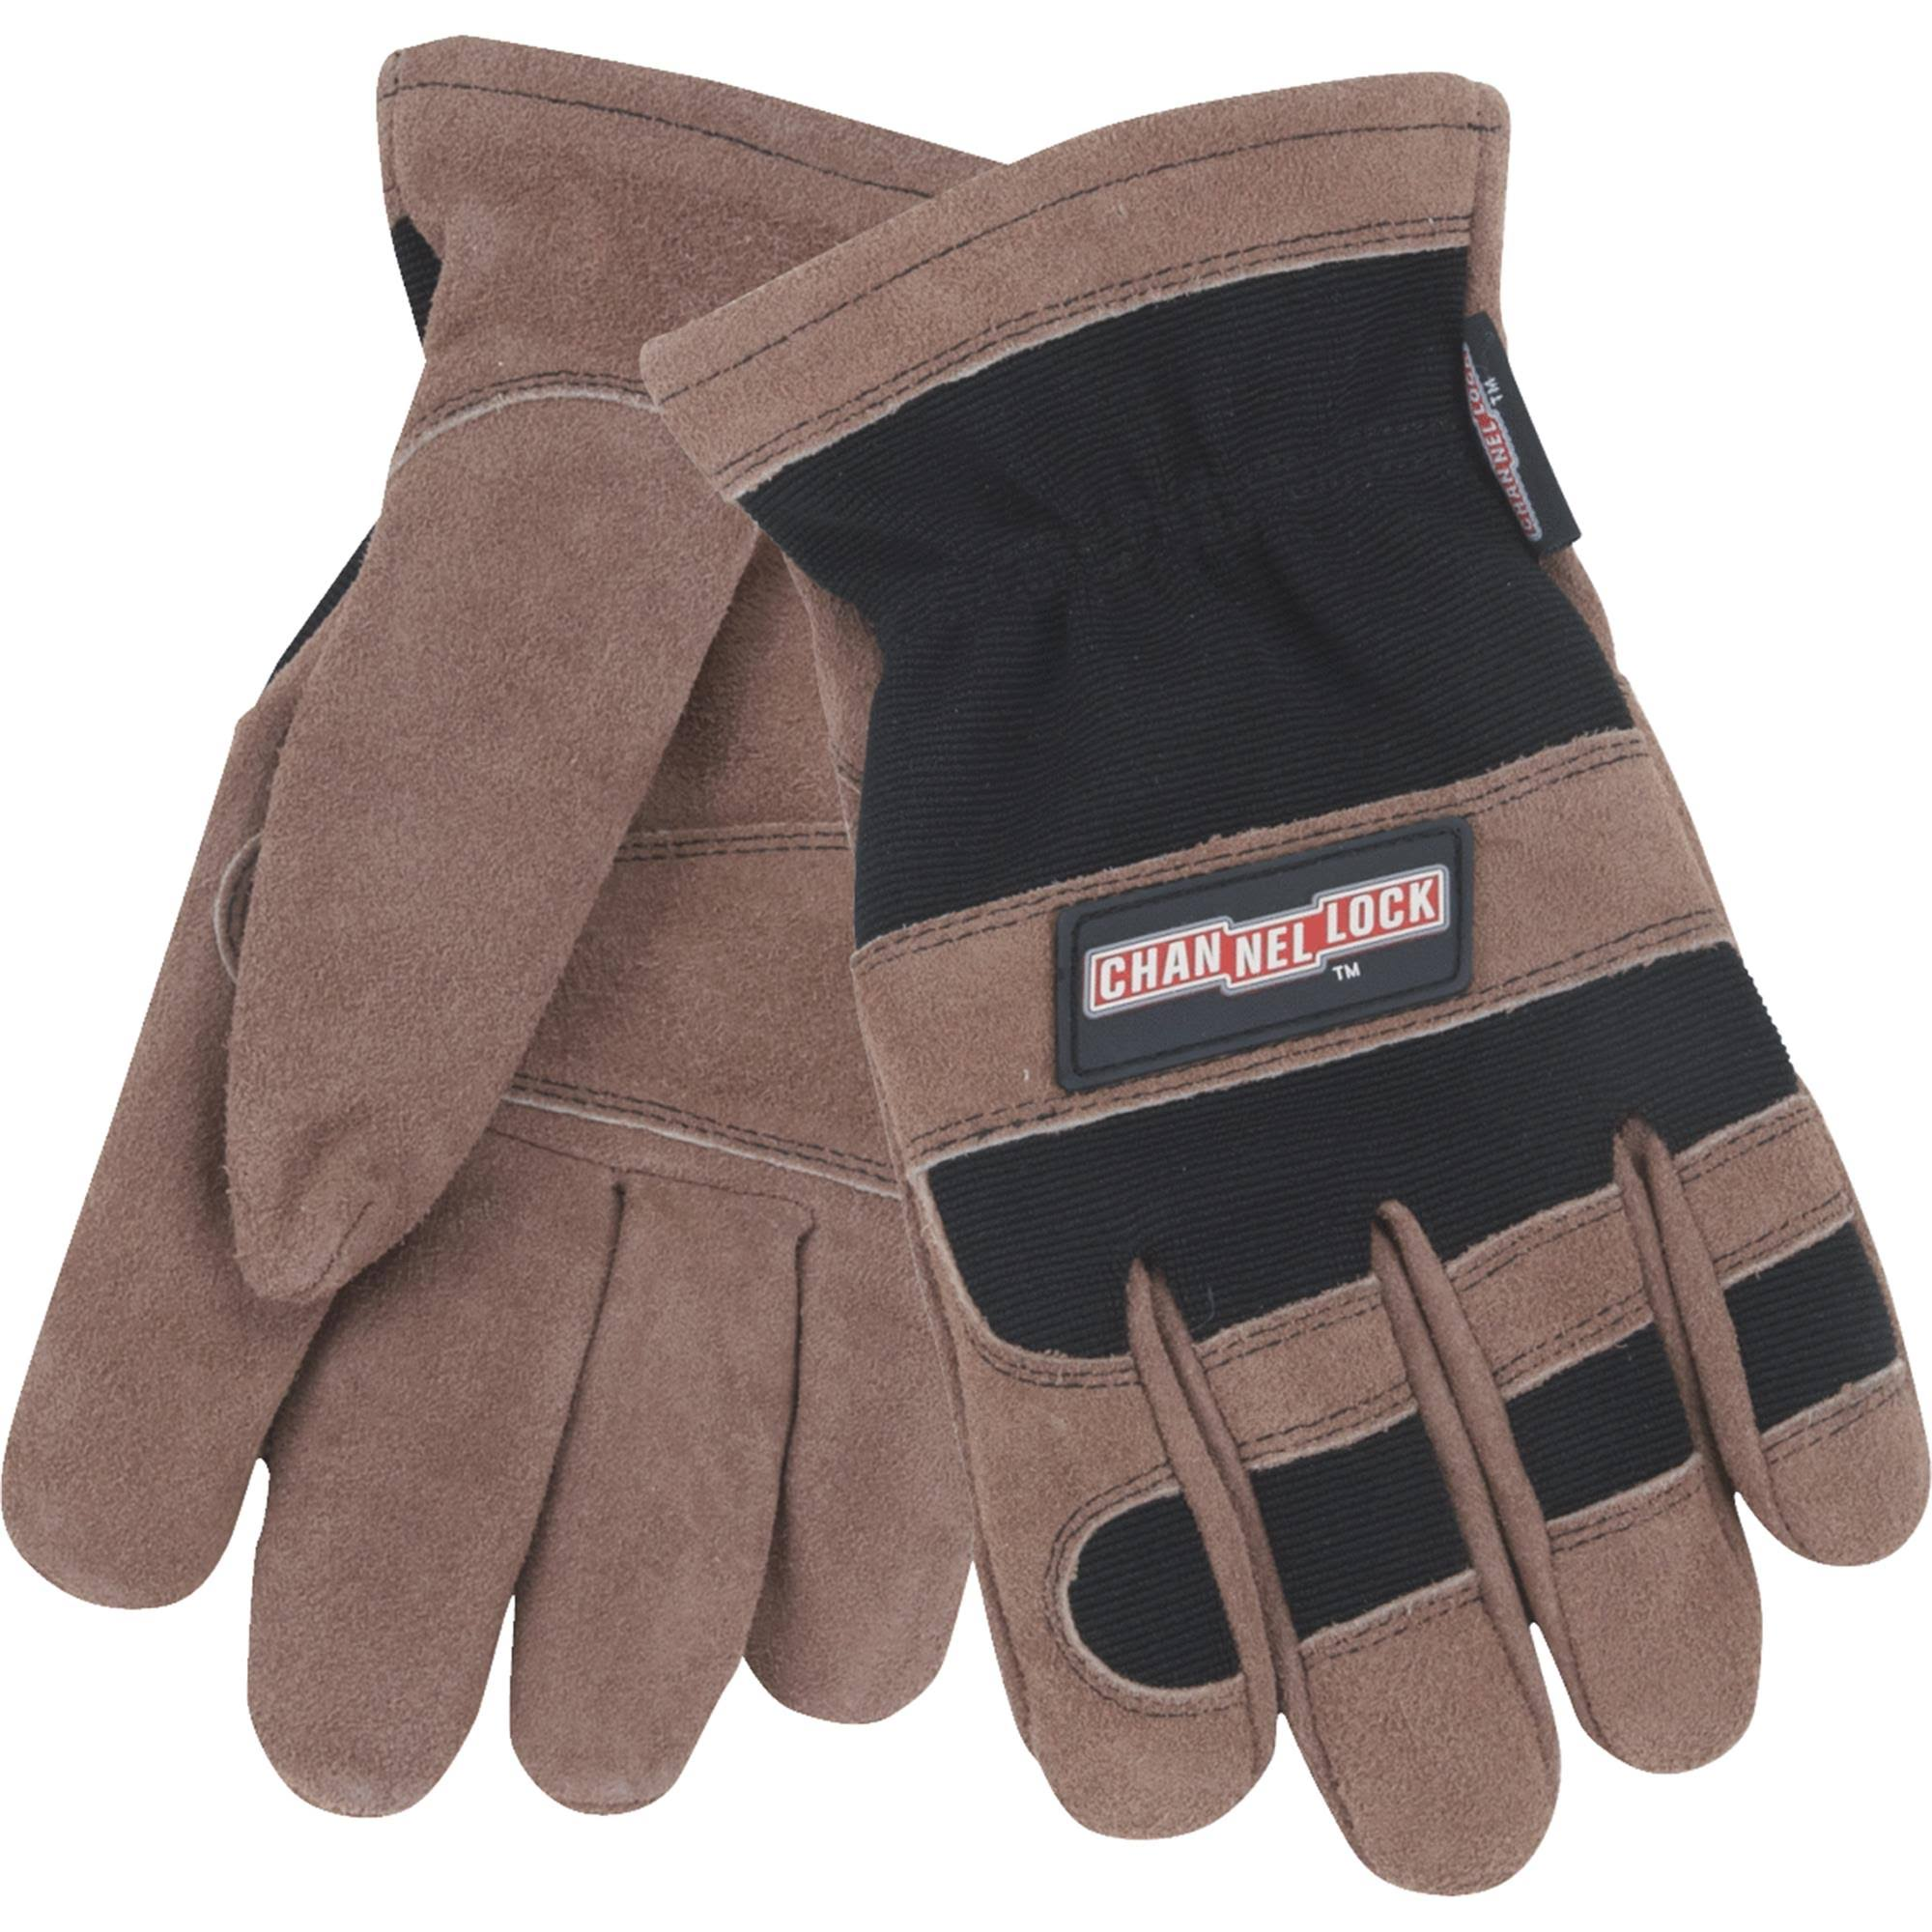 Channellock 701841 Winter Work Glove - Brown/Black